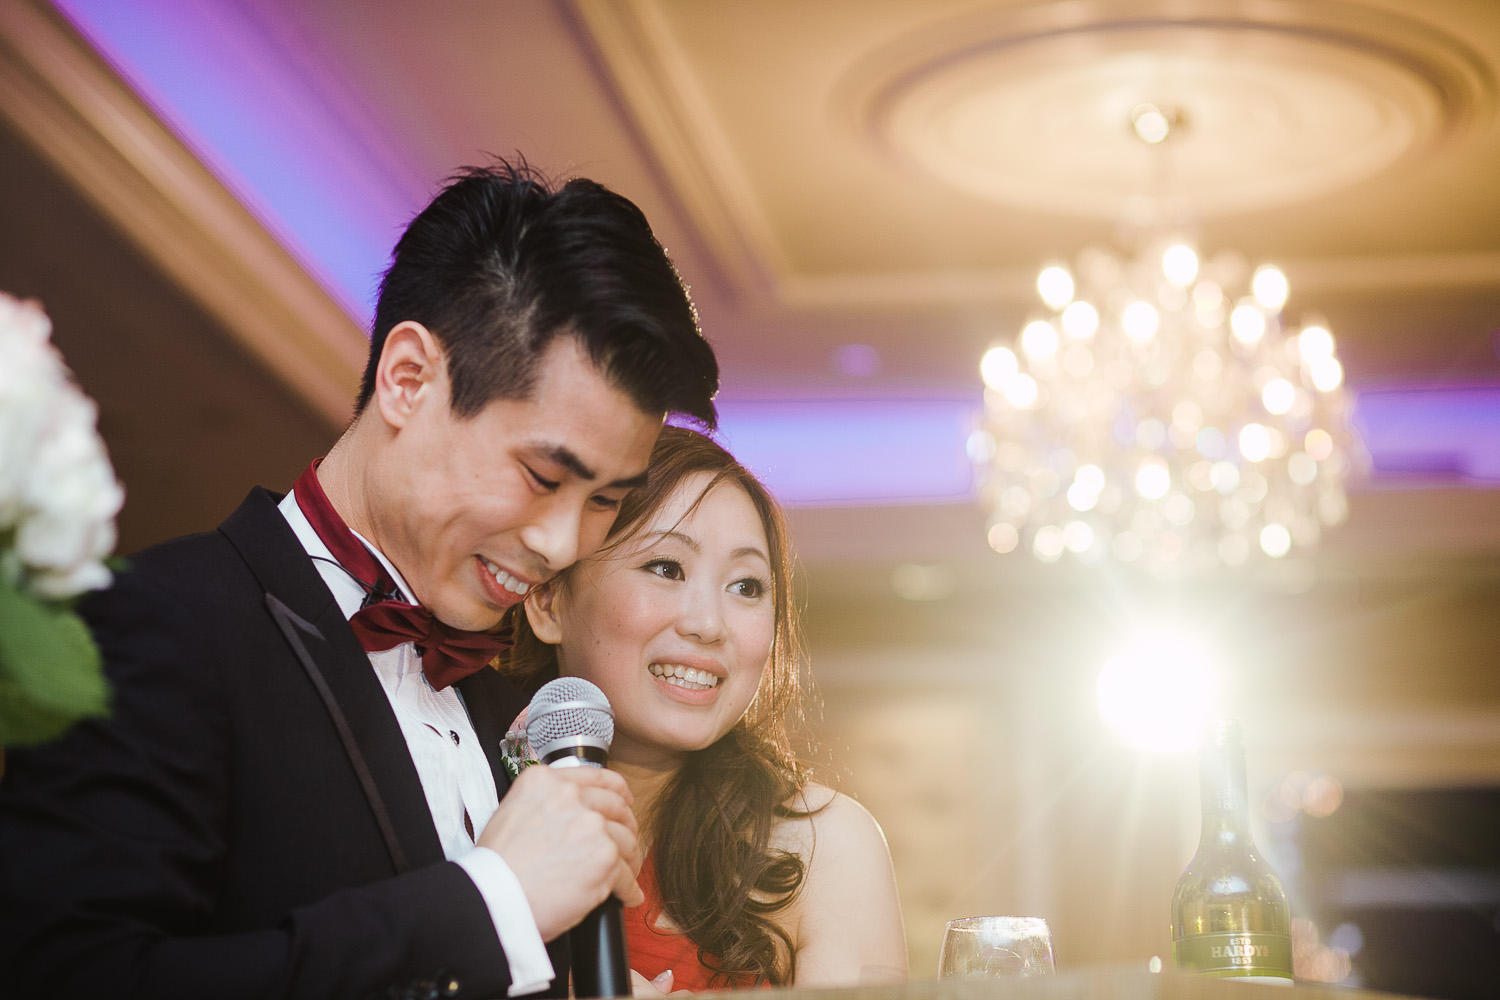 VANCOUVER WEDDING PHOTOGRAPHER | EMPIRE SEAFOOD RESTAURANT WEDDING